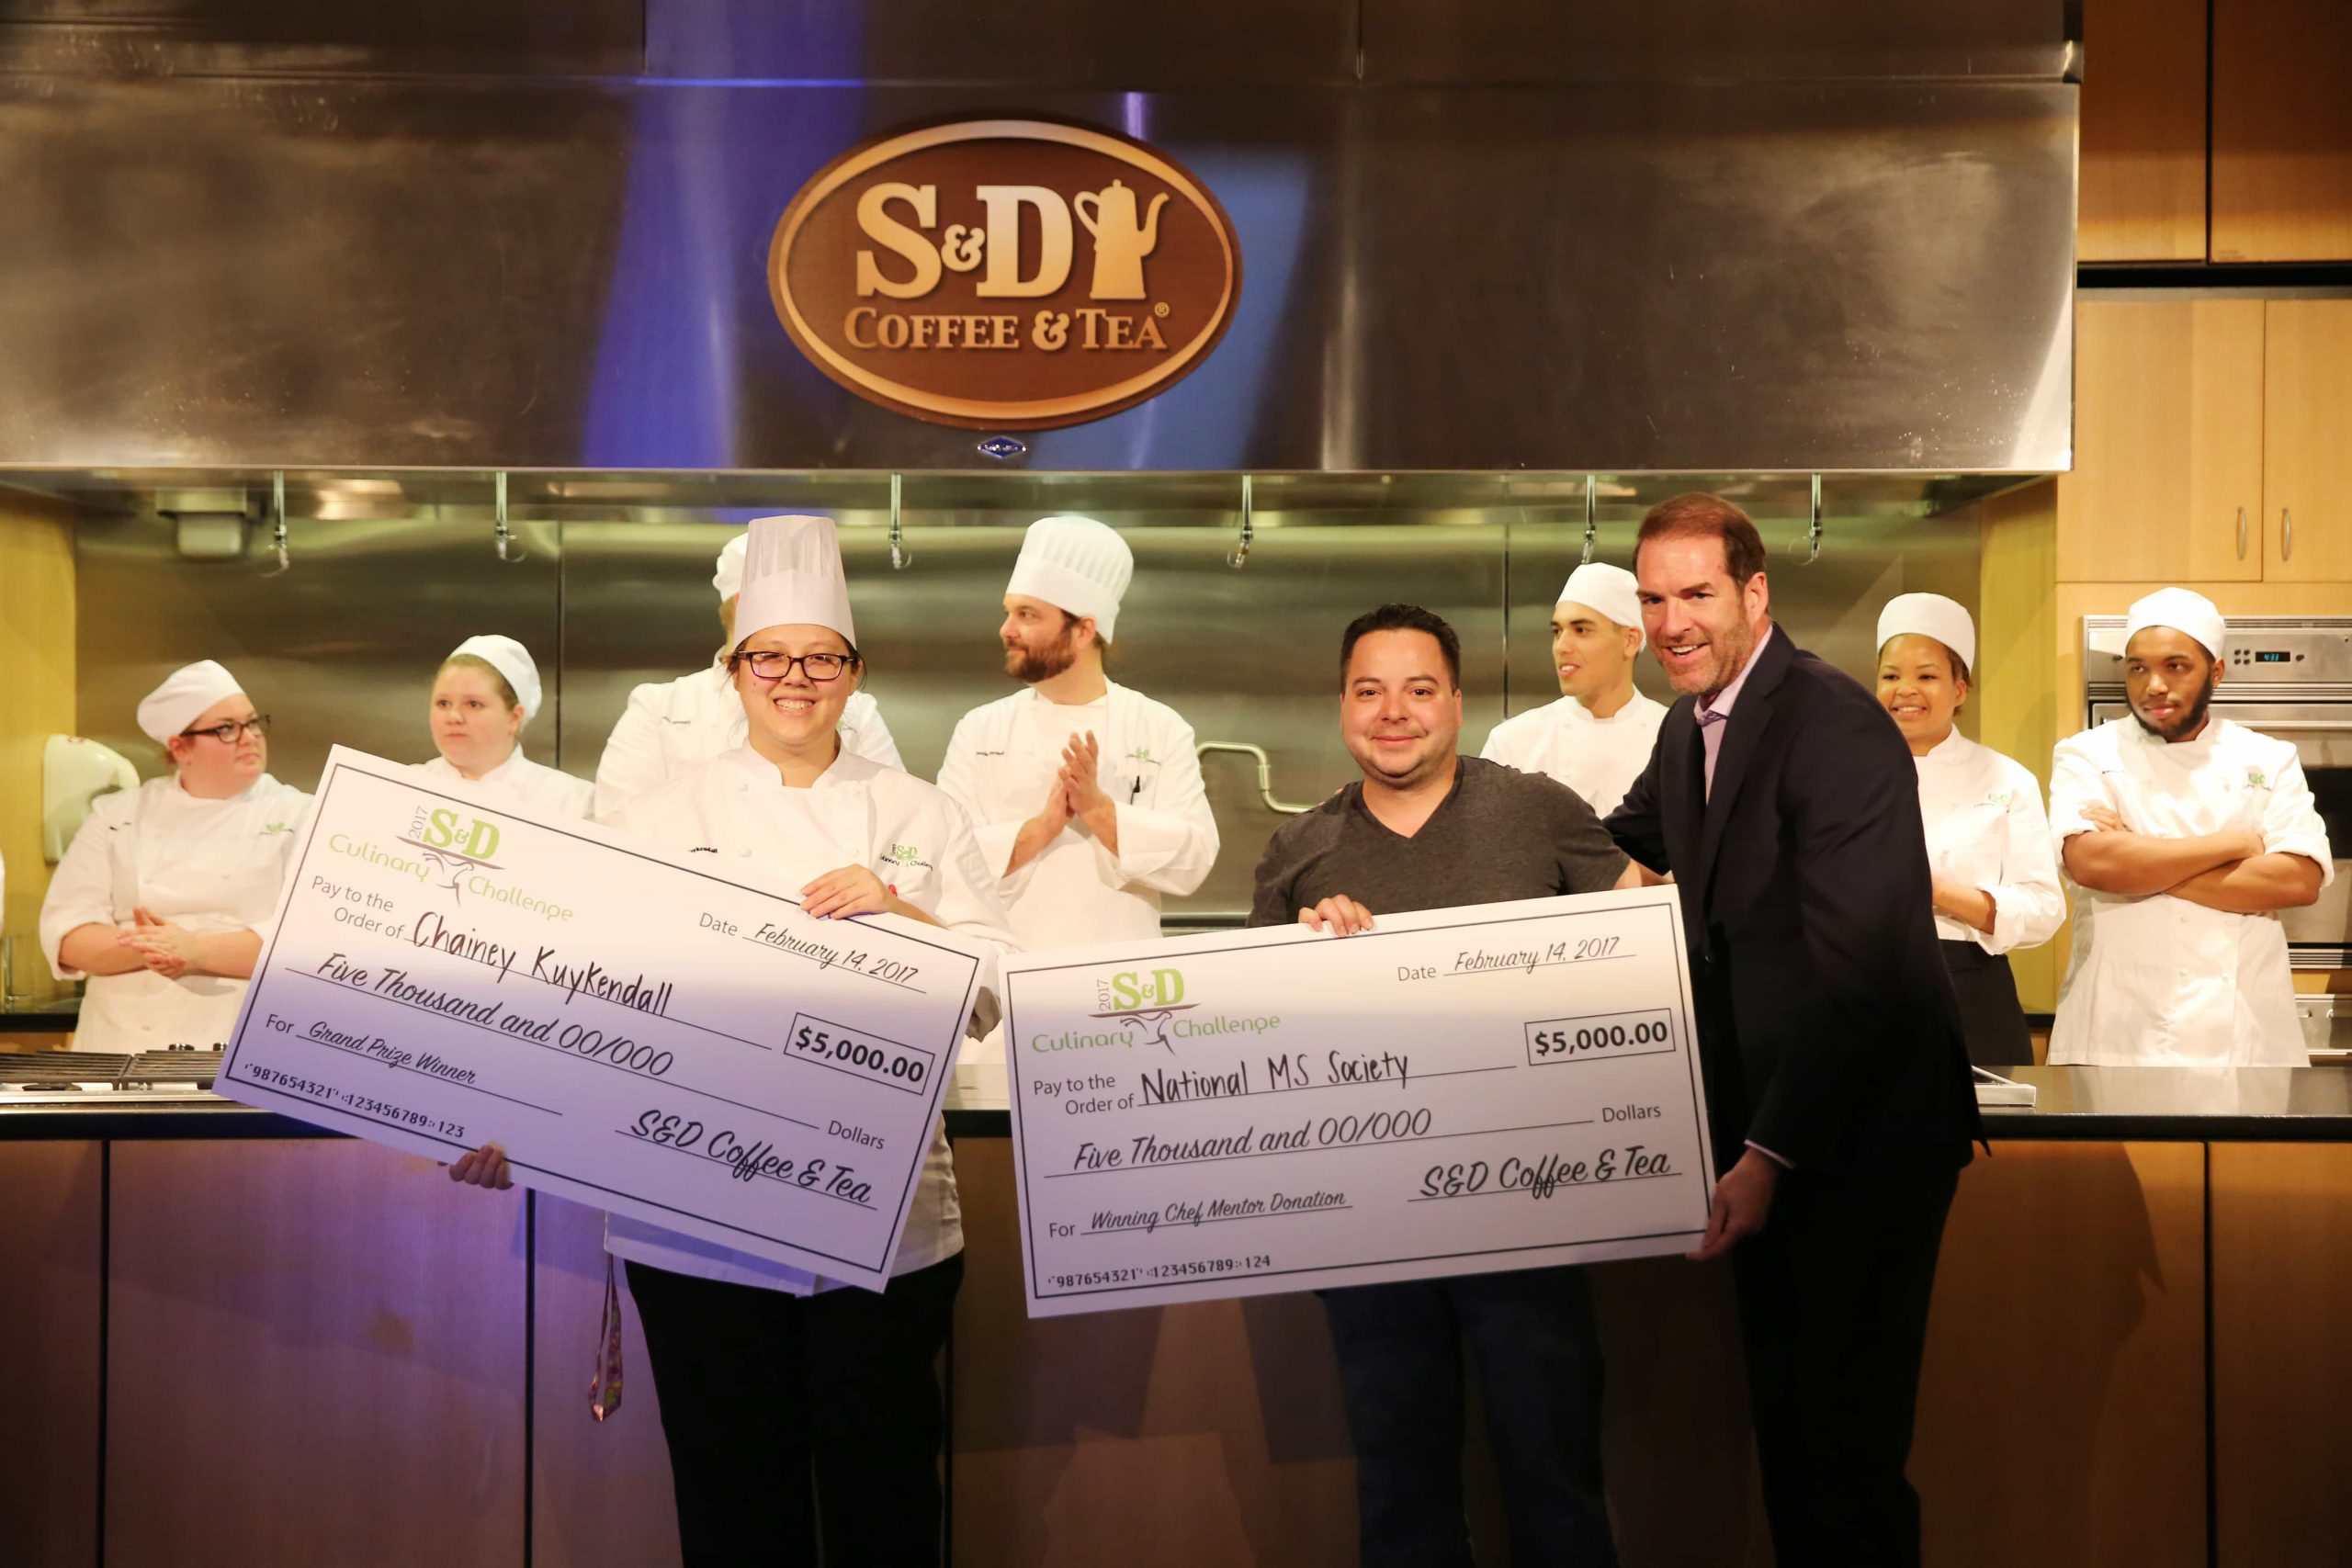 JWU Charlotte Student Chainey Kuykendall Wins Back-to-Back S&D Culinary Challenges